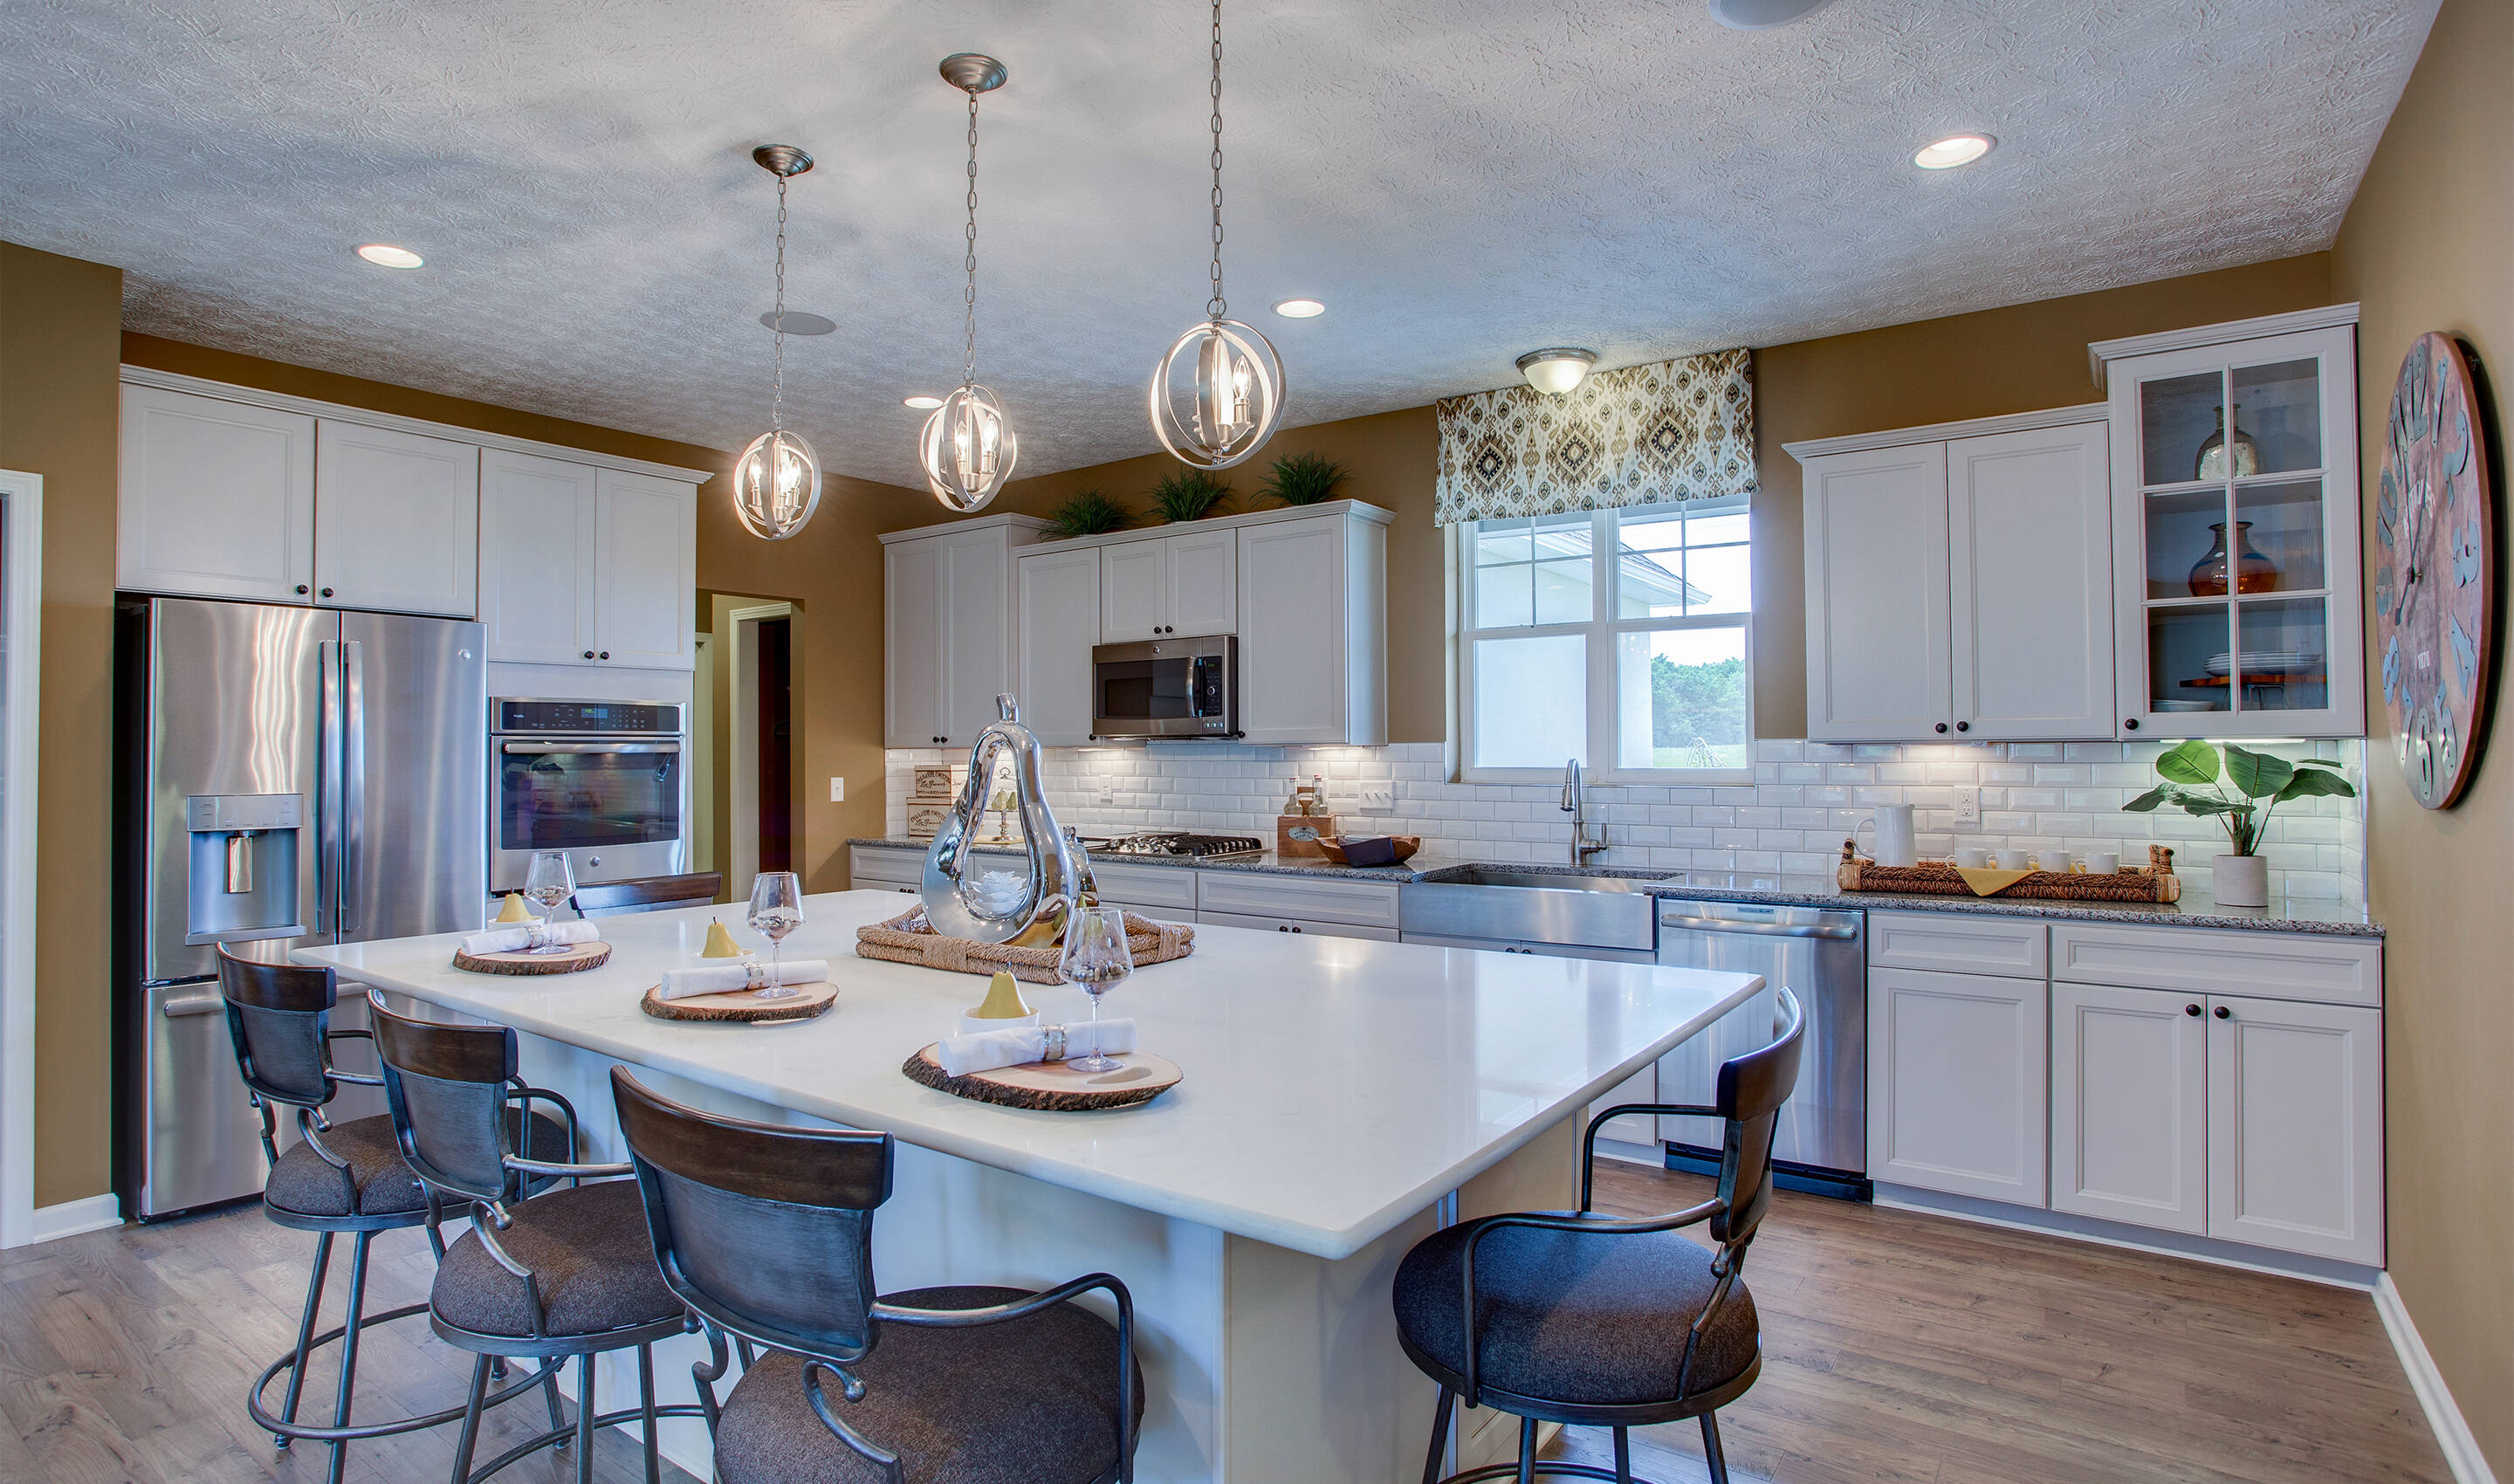 K Hovnanian Home Design Gallery - Home Design Ideas